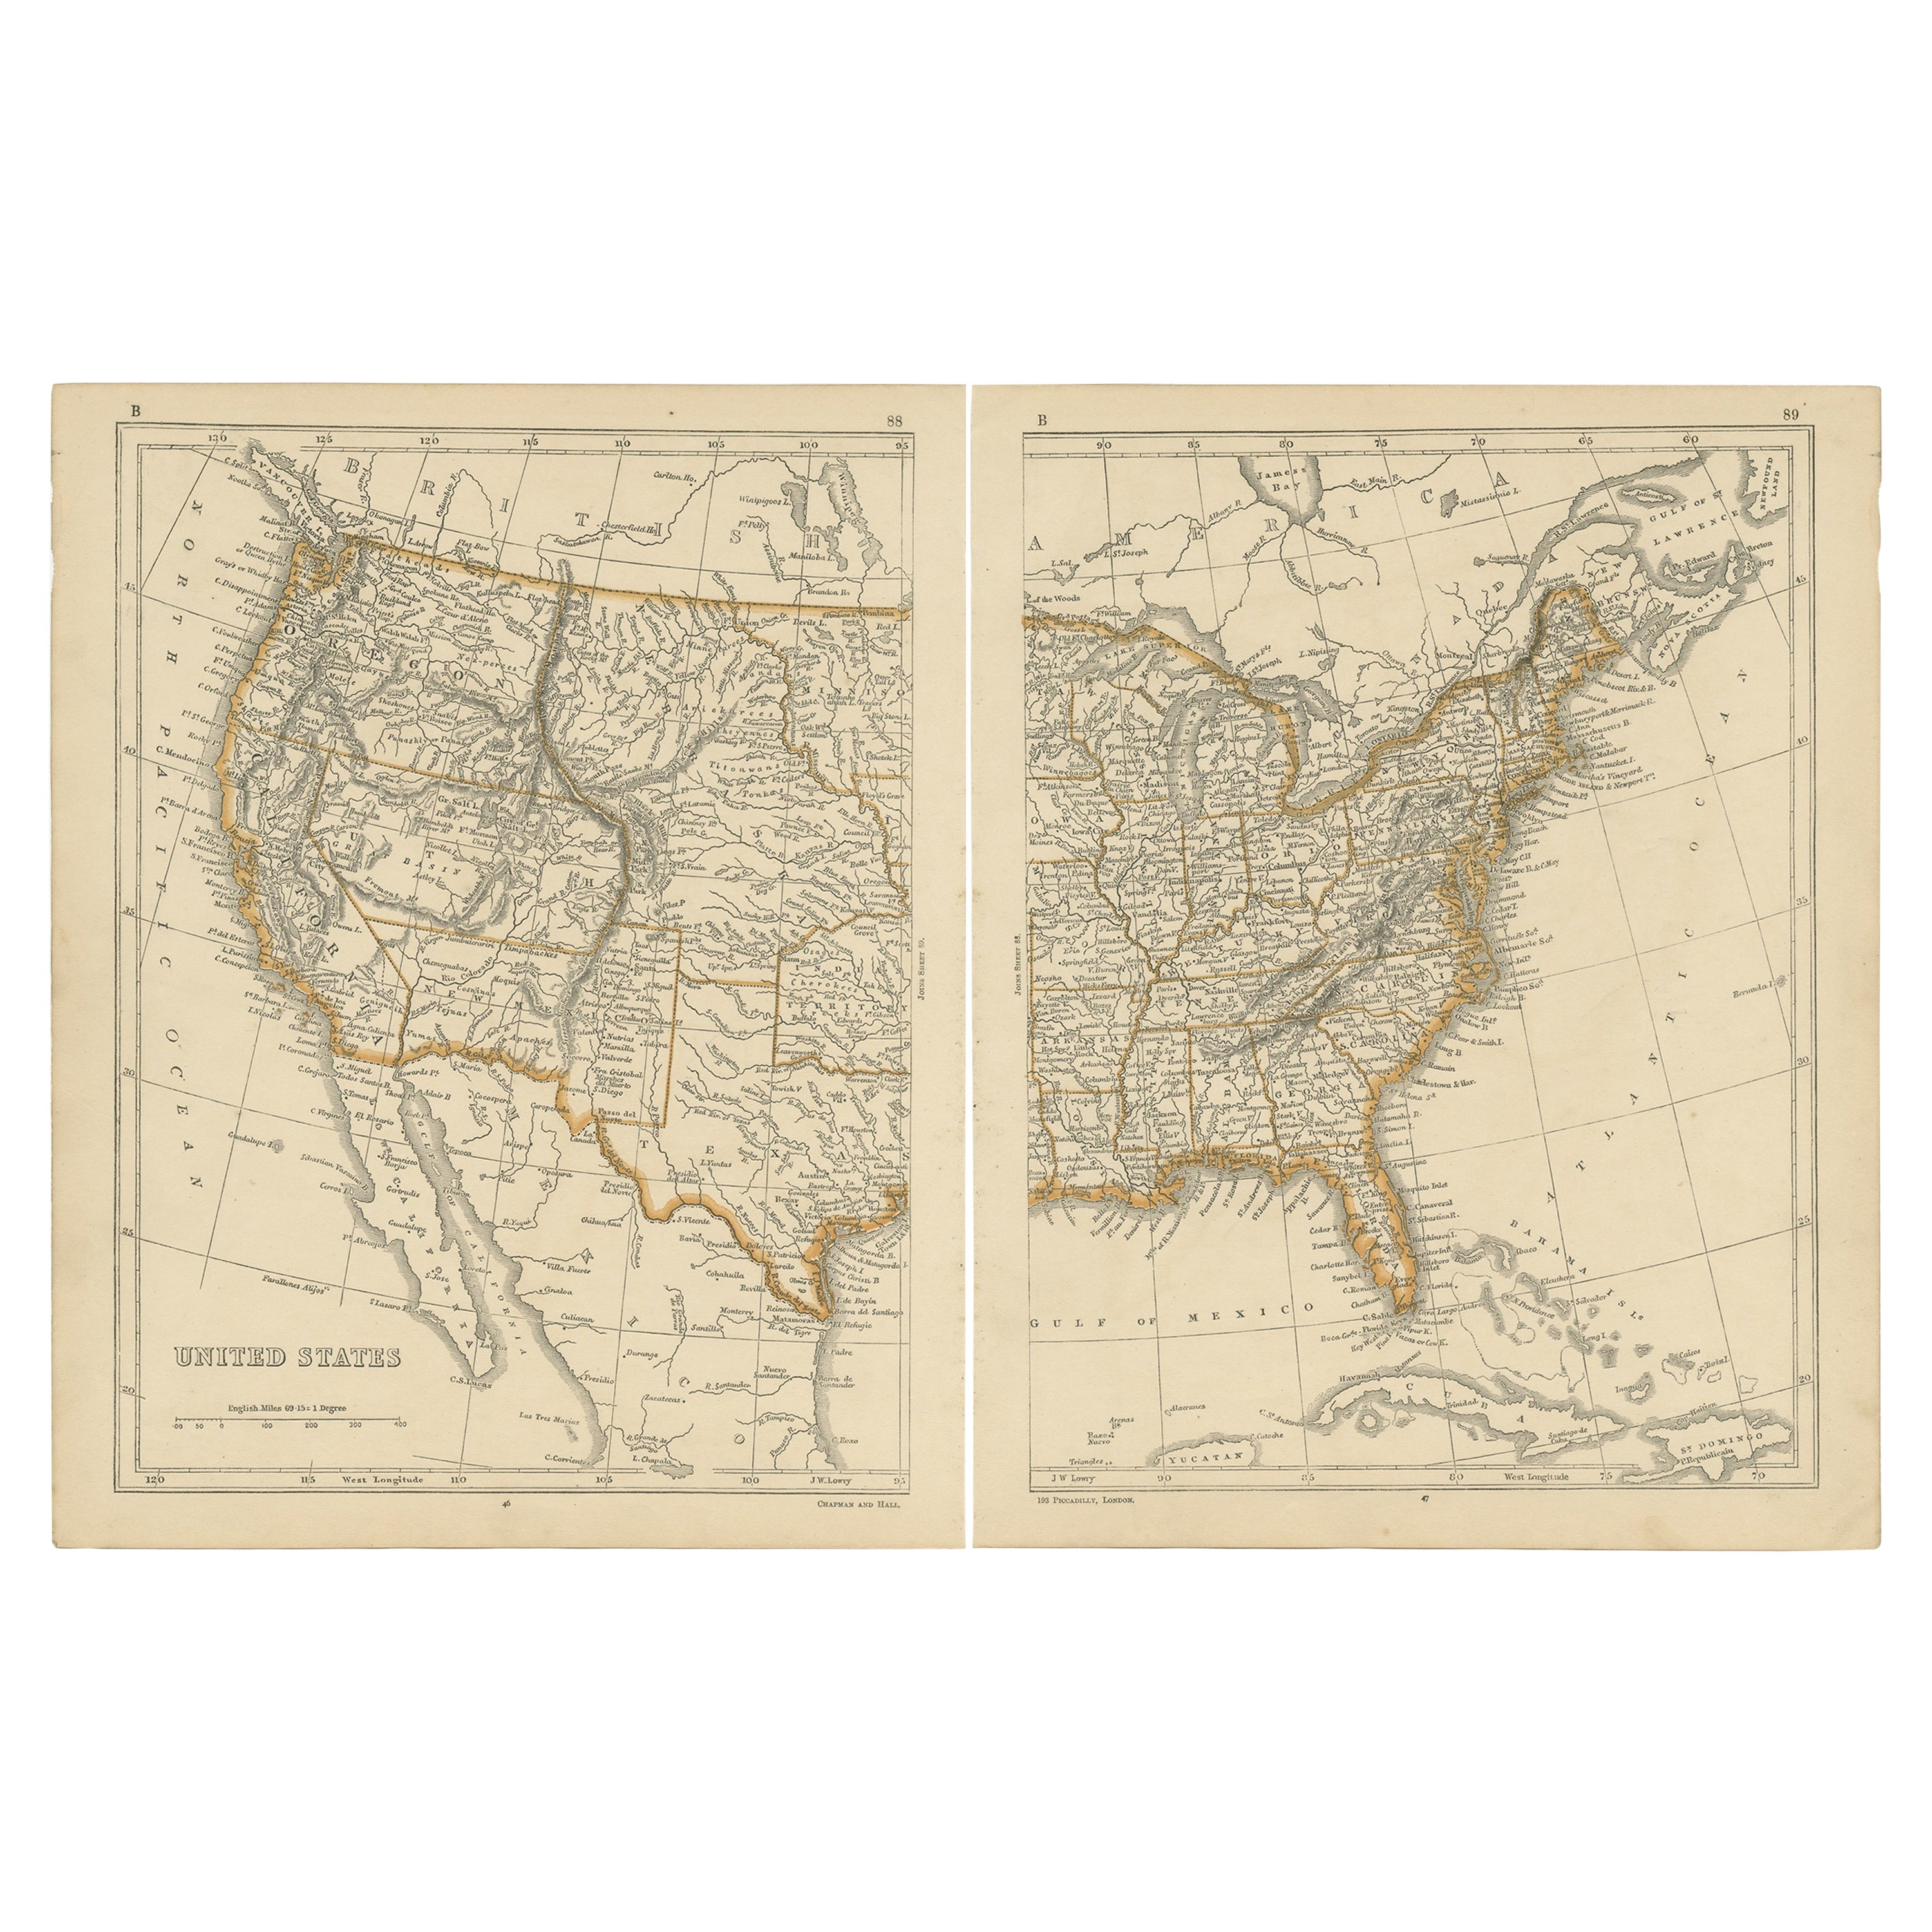 Antique Map of the United States by Lowry, 1852